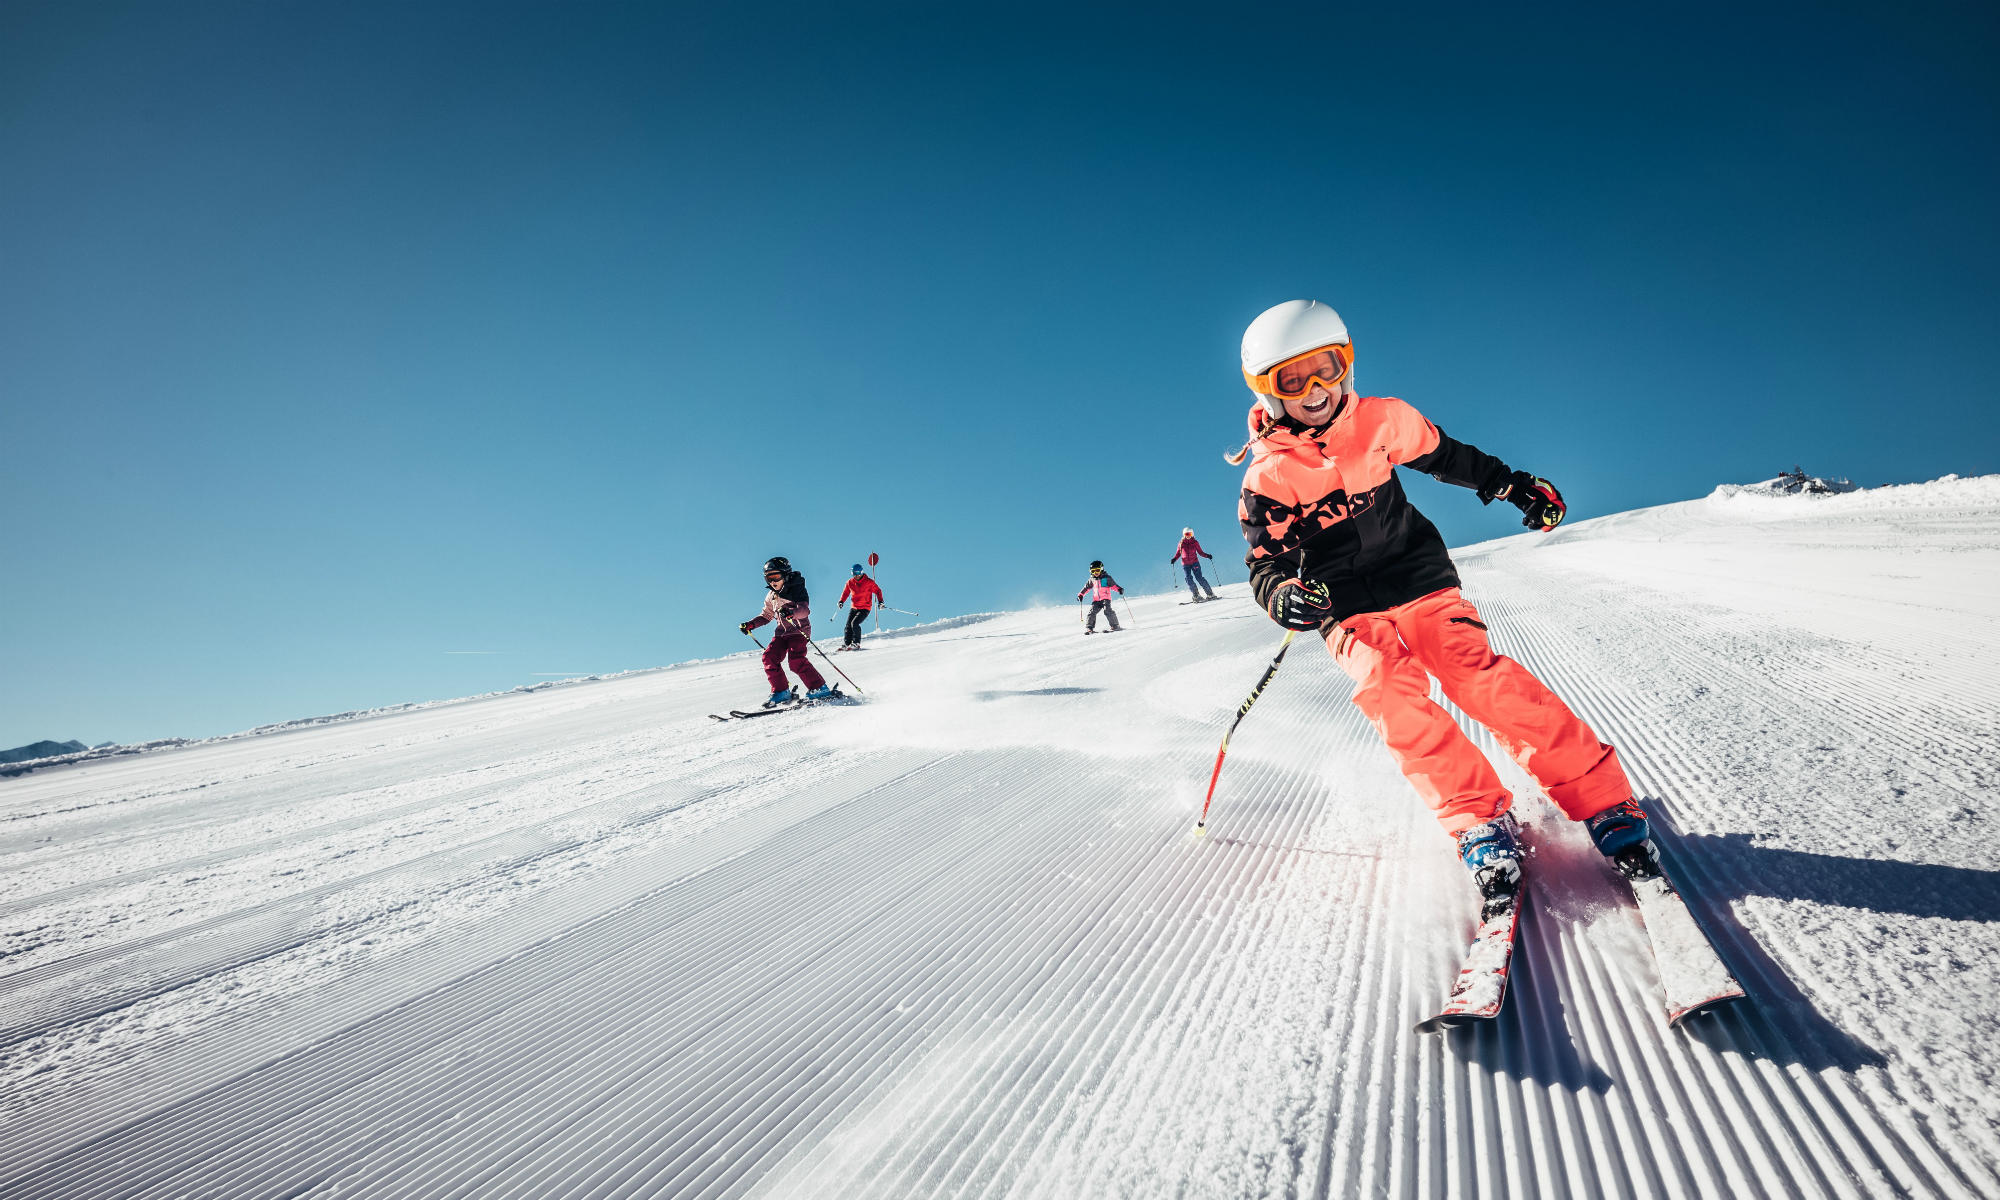 A group of children skiing on a perfectly groomed piste in the Austrian ski resort Zell am See-Kaprun.